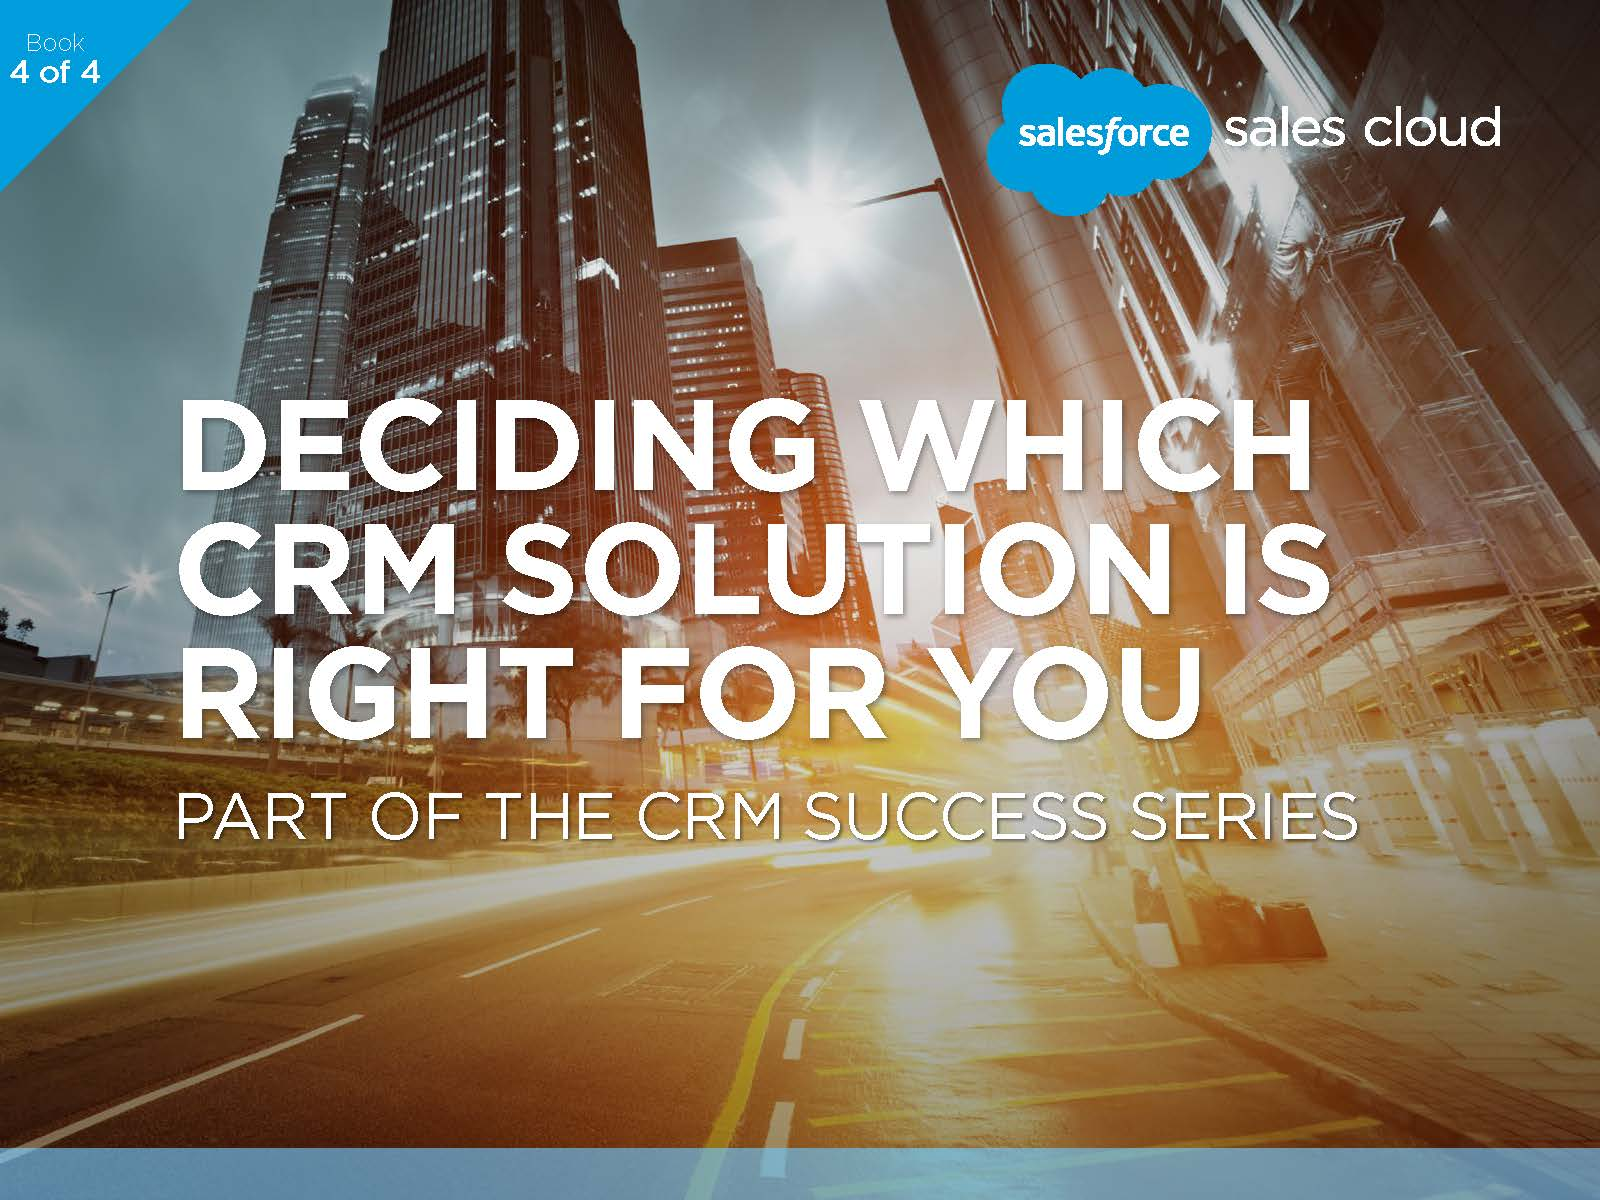 SFDC_Solutions